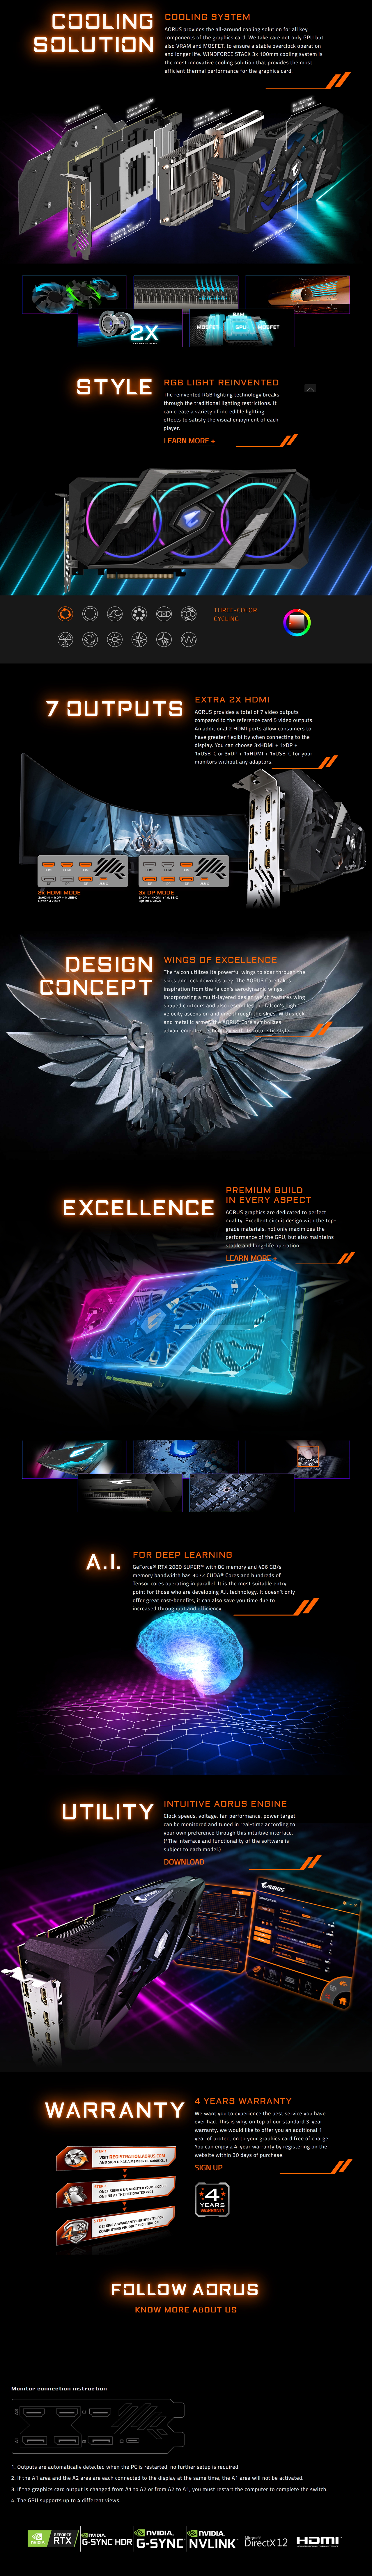 A large marketing image providing additional information about the product Gigabyte GeForce RTX2080 Super Aorus 8GB GDDR6 - Additional alt info not provided